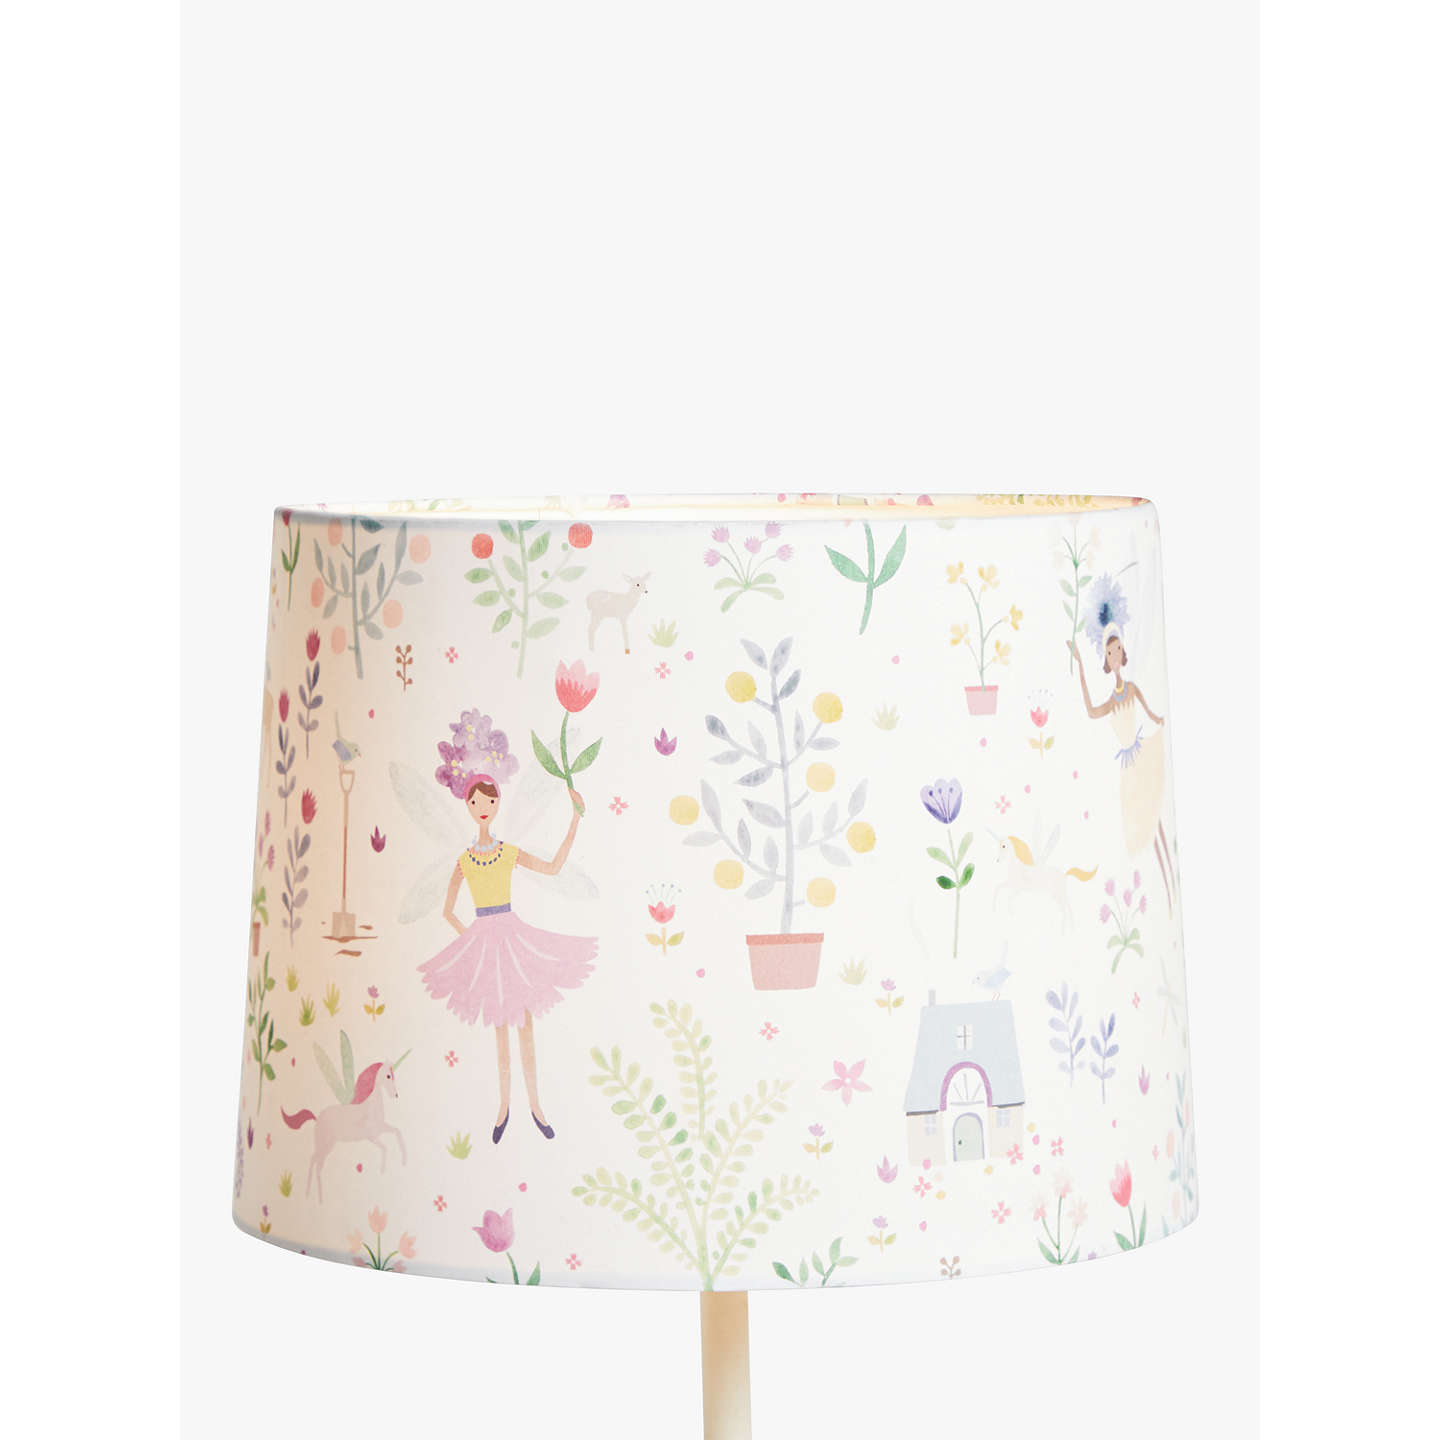 Little home at john lewis country fairies lampshade at john lewis buylittle home at john lewis country fairies lampshade online at johnlewis aloadofball Gallery